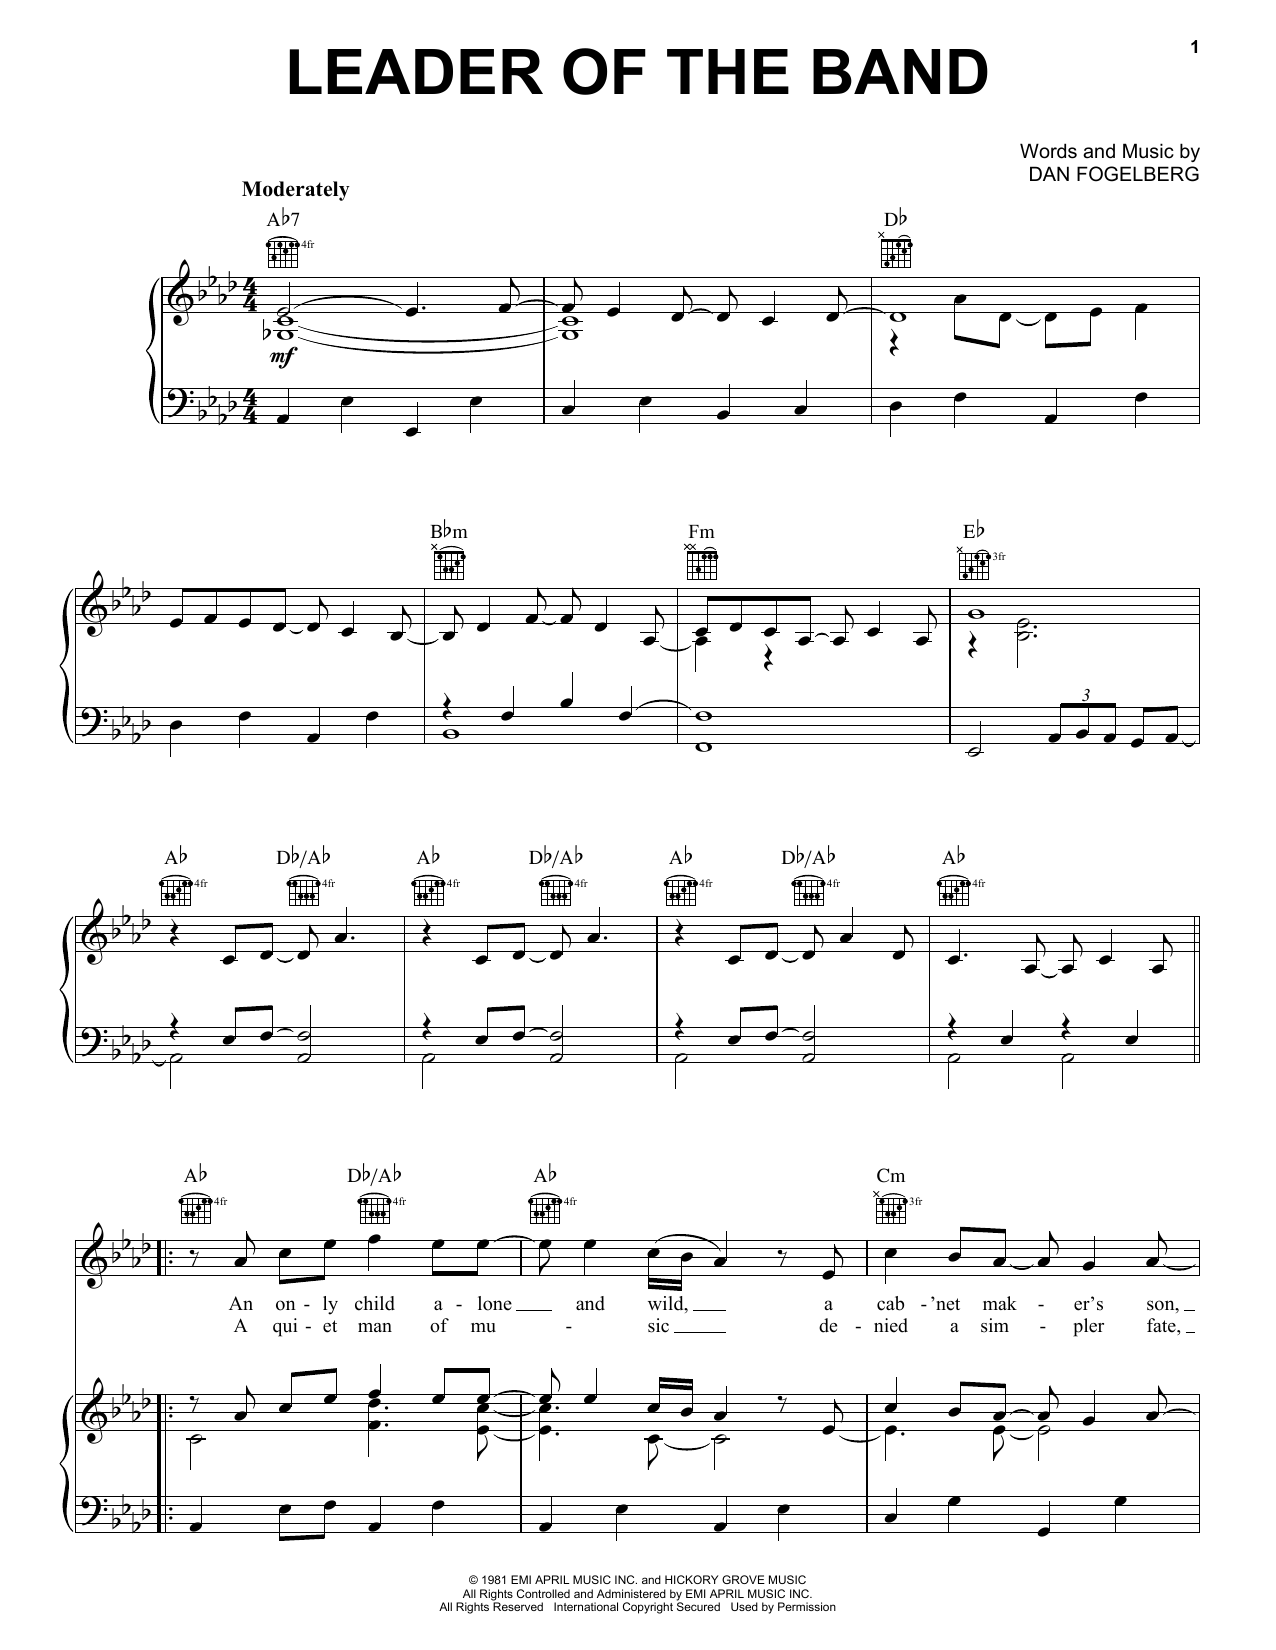 Dan Fogelberg Leader Of The Band sheet music notes and chords. Download Printable PDF.